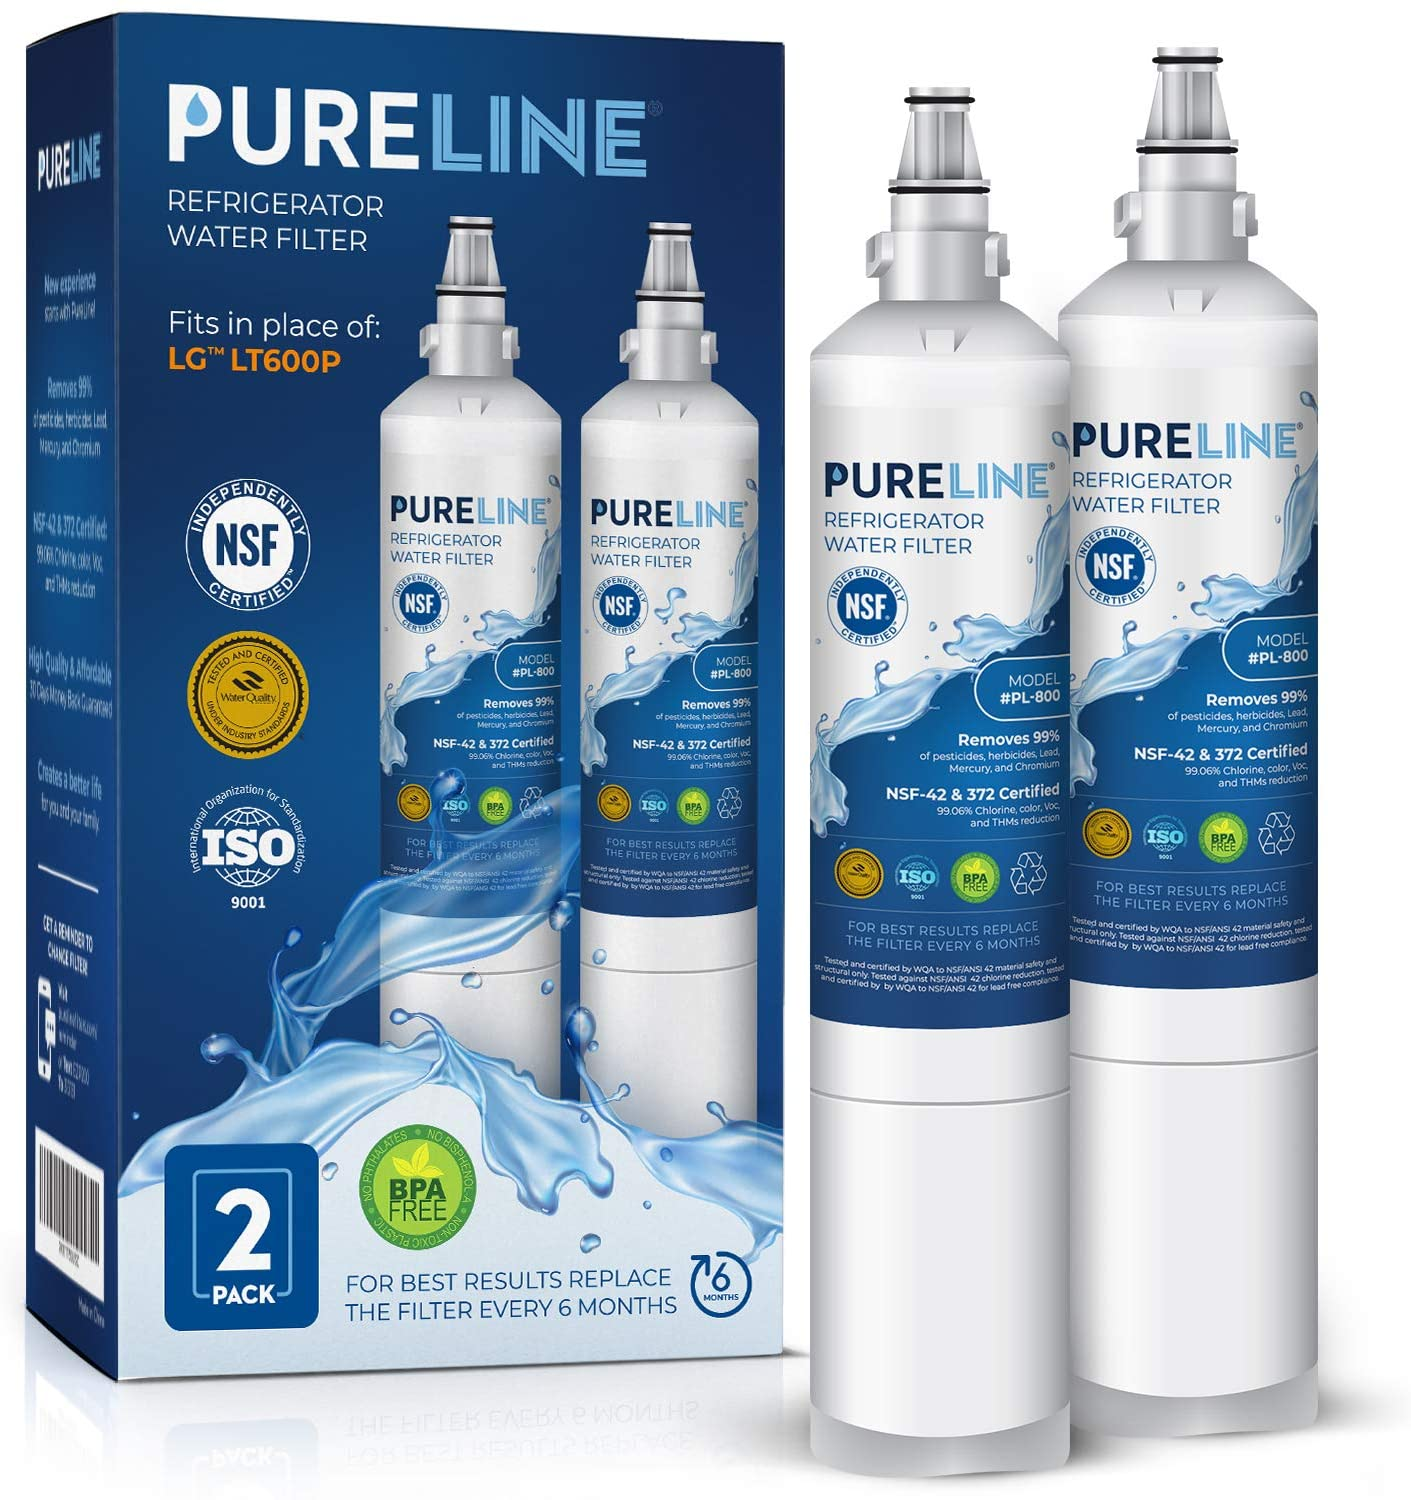 Kenmore 9990 & LG 5231ja2006a Water Filter Replacement. Compatible with Kenmore 9990, LG LT600P, LG 5231ja2006a, Kenmoreclear 46-9990-PURELINE (2 Pack)